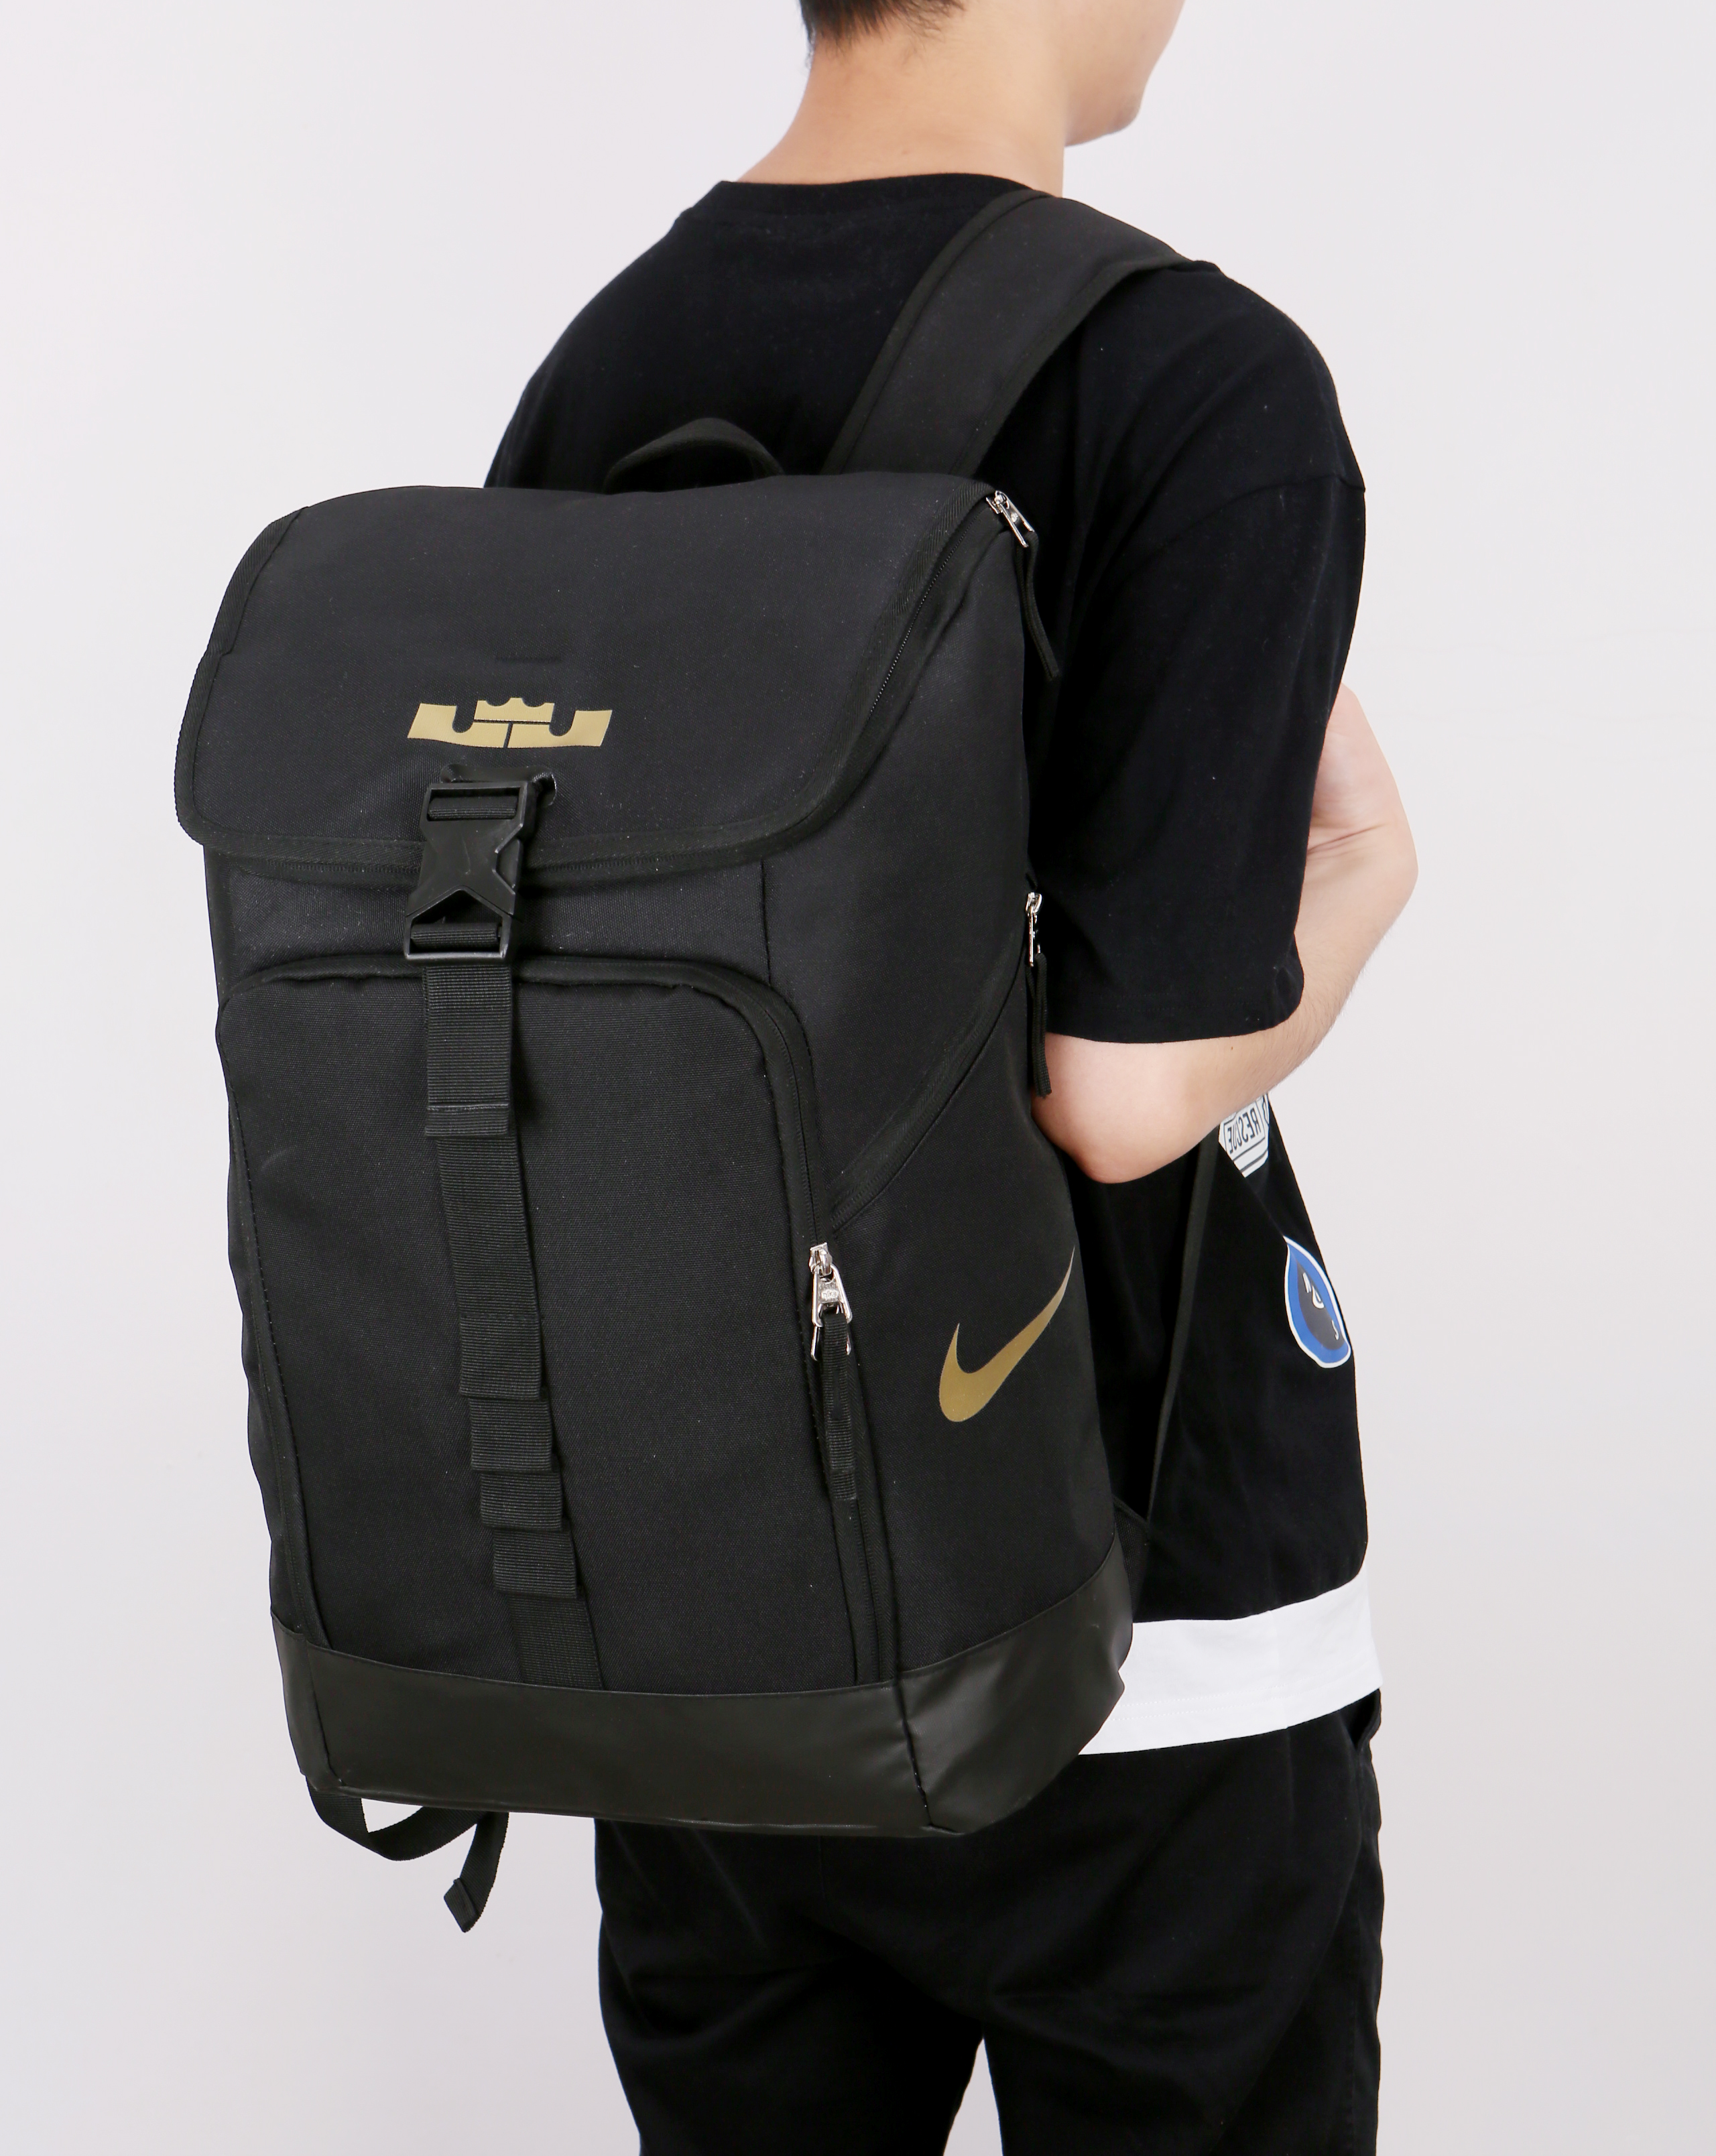 Nike LeBron Backpack Black Gold